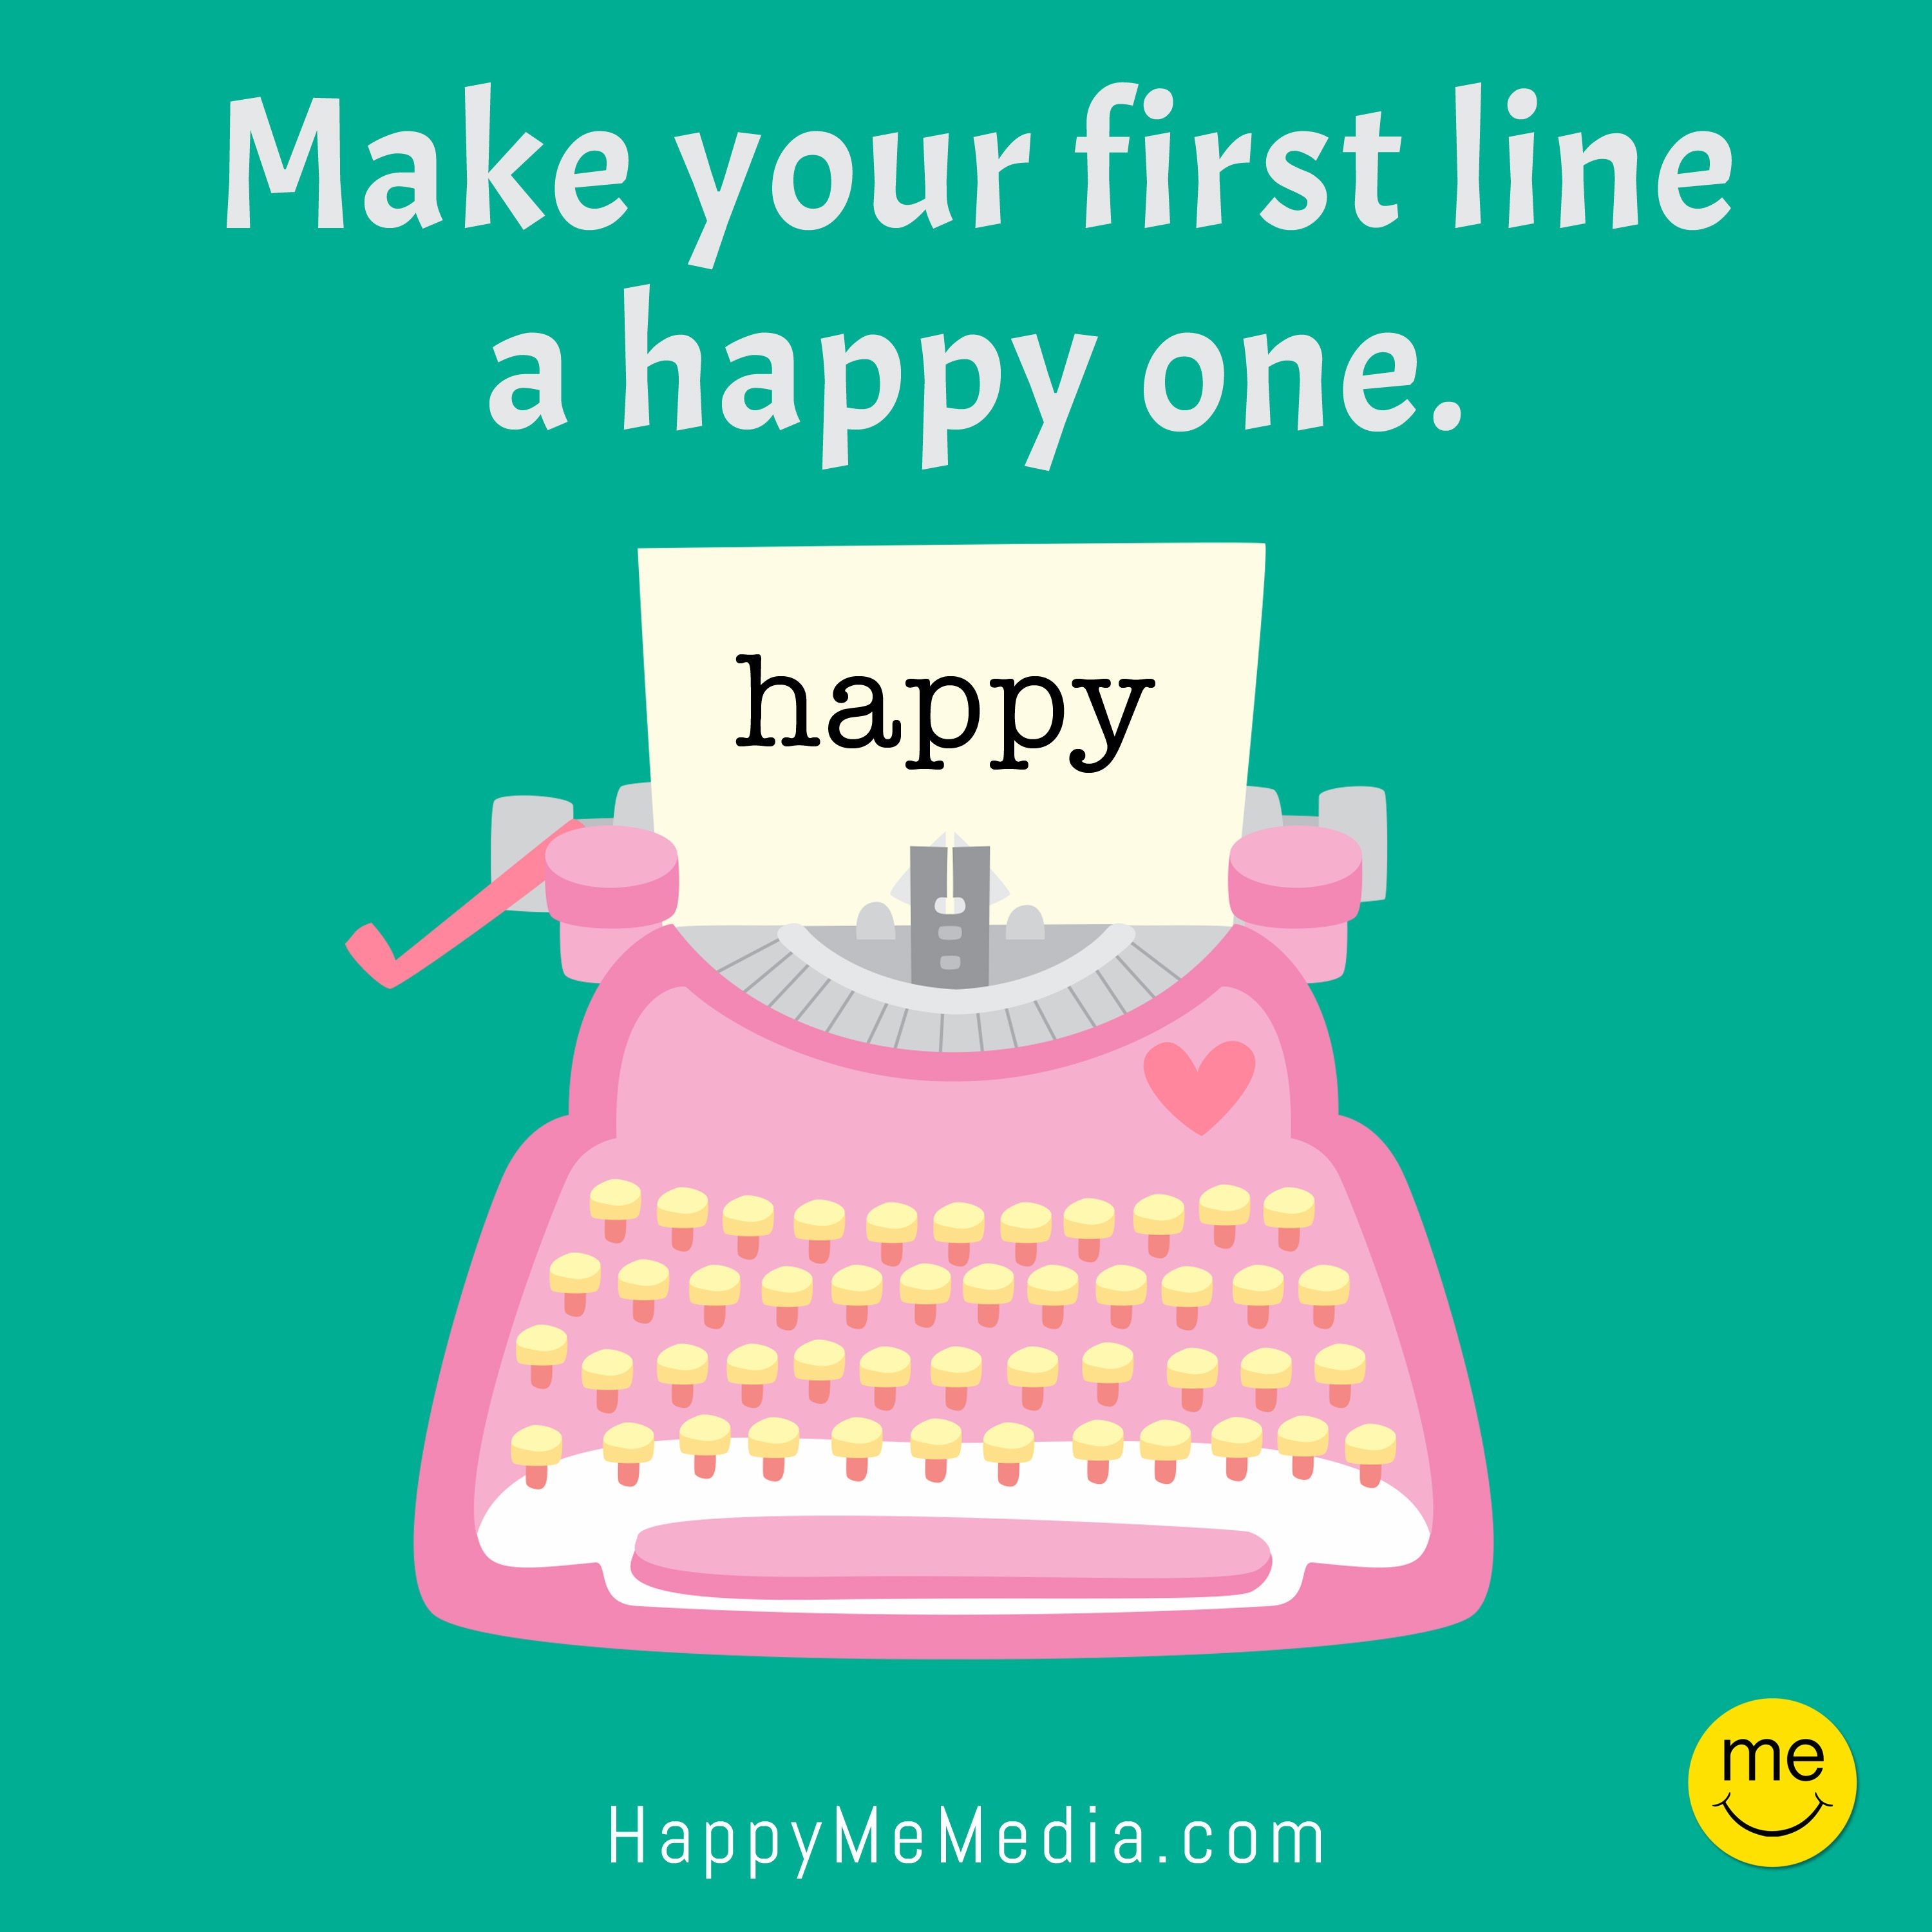 Happiness Quotes To Share On Facebook Www Facebook Com Get More Happy Www Happymemedia Com Happymemedia Pinterest Quotes P Happy Quotes Happy I Am Happy